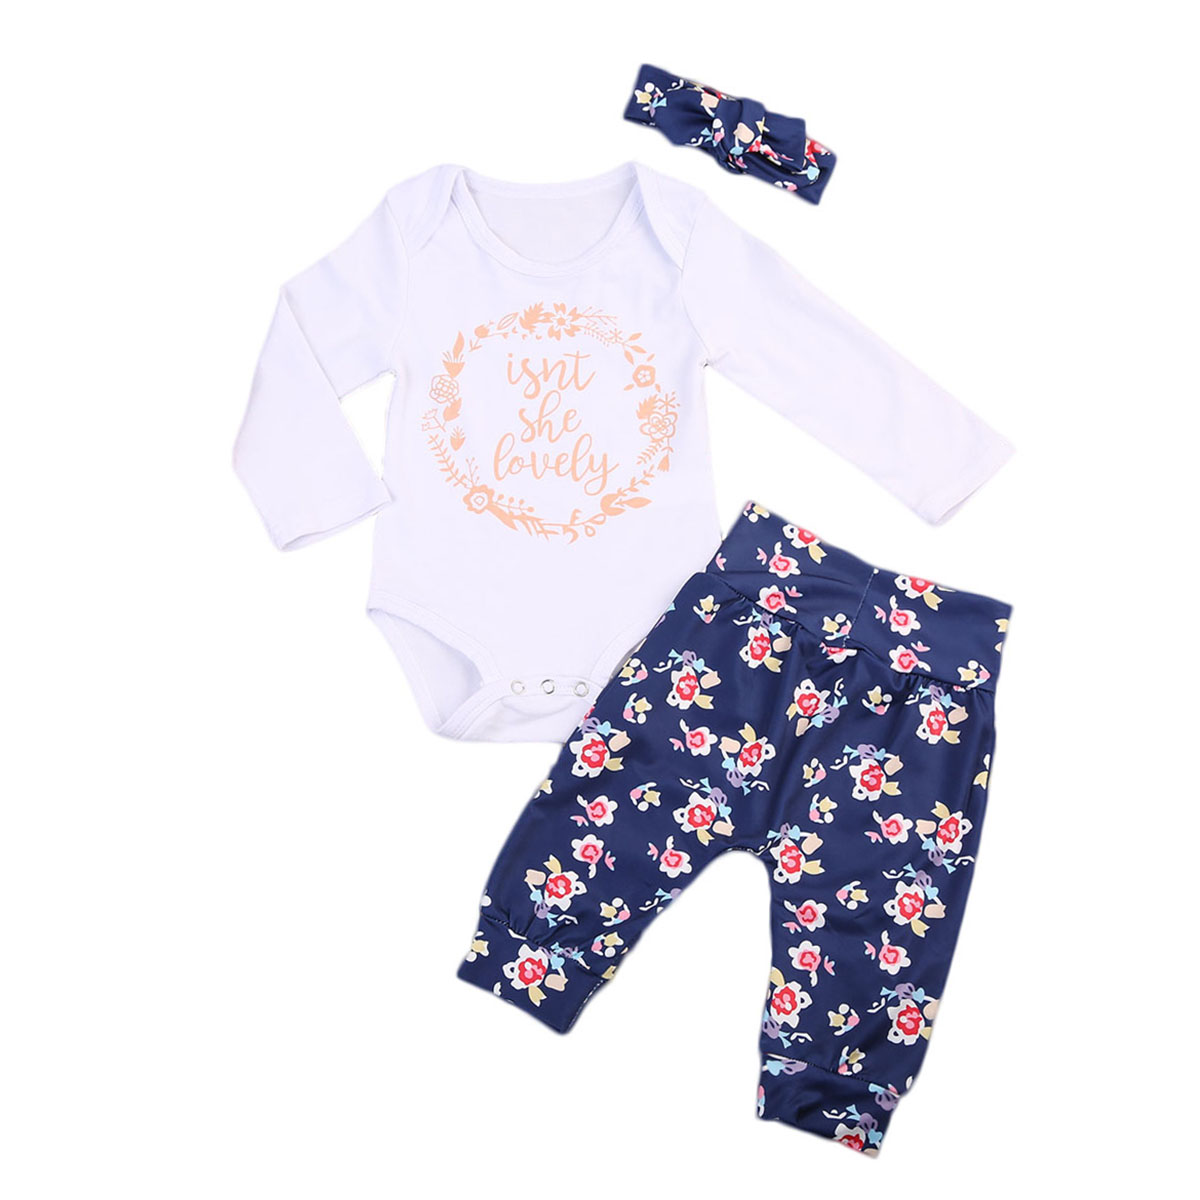 3PCS Newborn Baby Girl Clothes Set Long Sleeve Letter Print Cotton Romper Bodysuit +Floral Long Pant Headband Outfit Bebek Giyim pink newborn infant baby girls clothes short sleeve bodysuit striped leg warmers headband 3pcs outfit bebek clothing set 0 18m